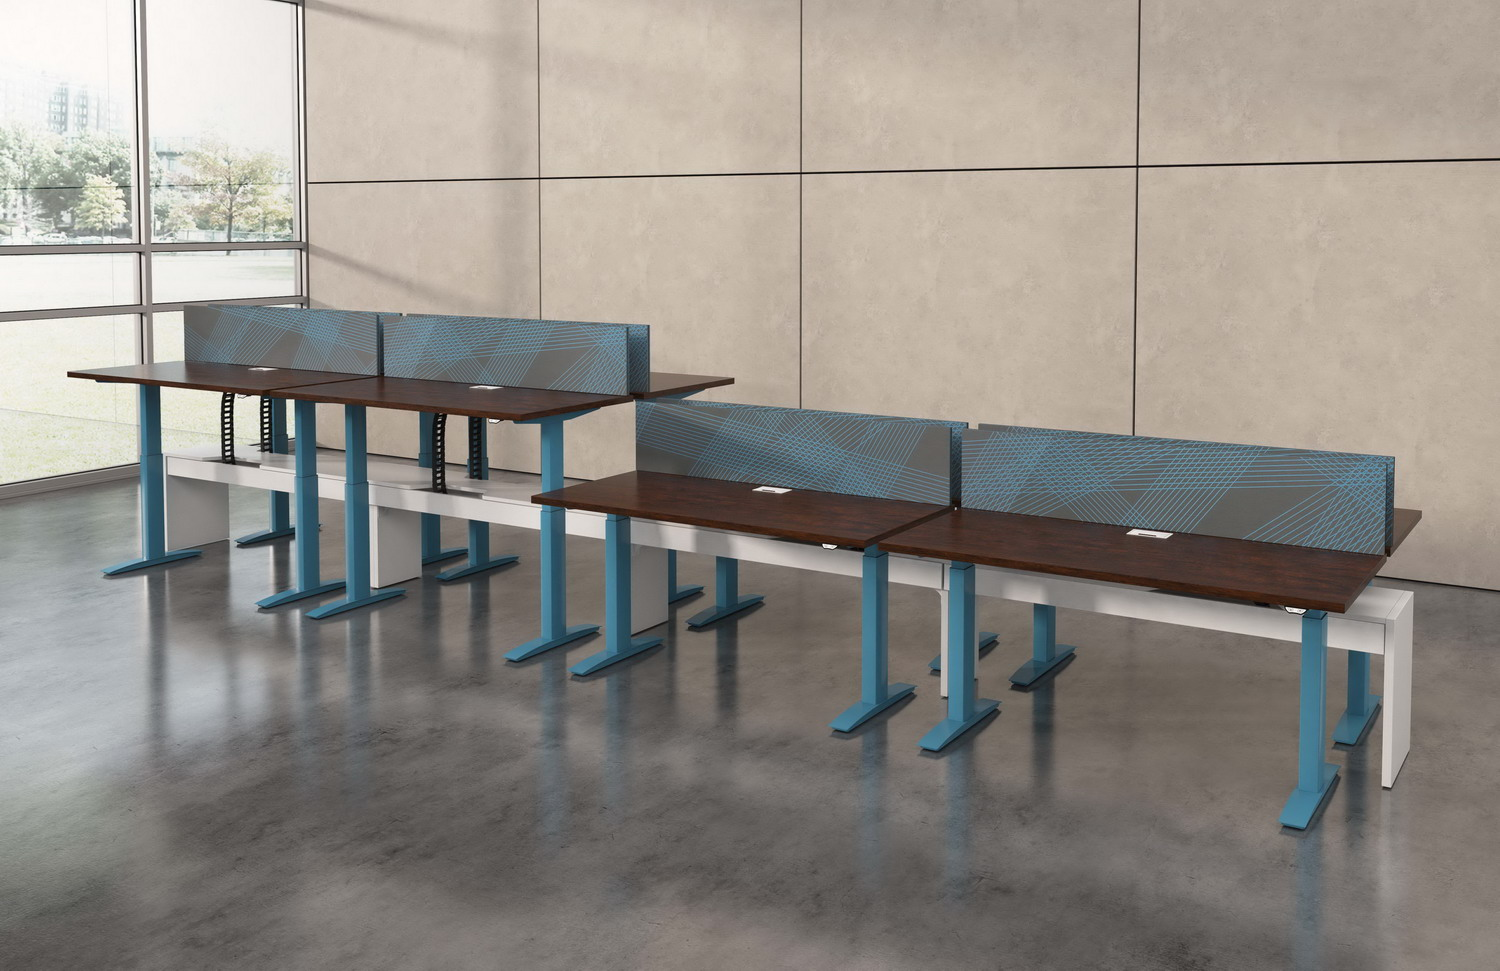 Contract furniture rendering of 4 height adjustable desks with graphic dividers attached to each desk.